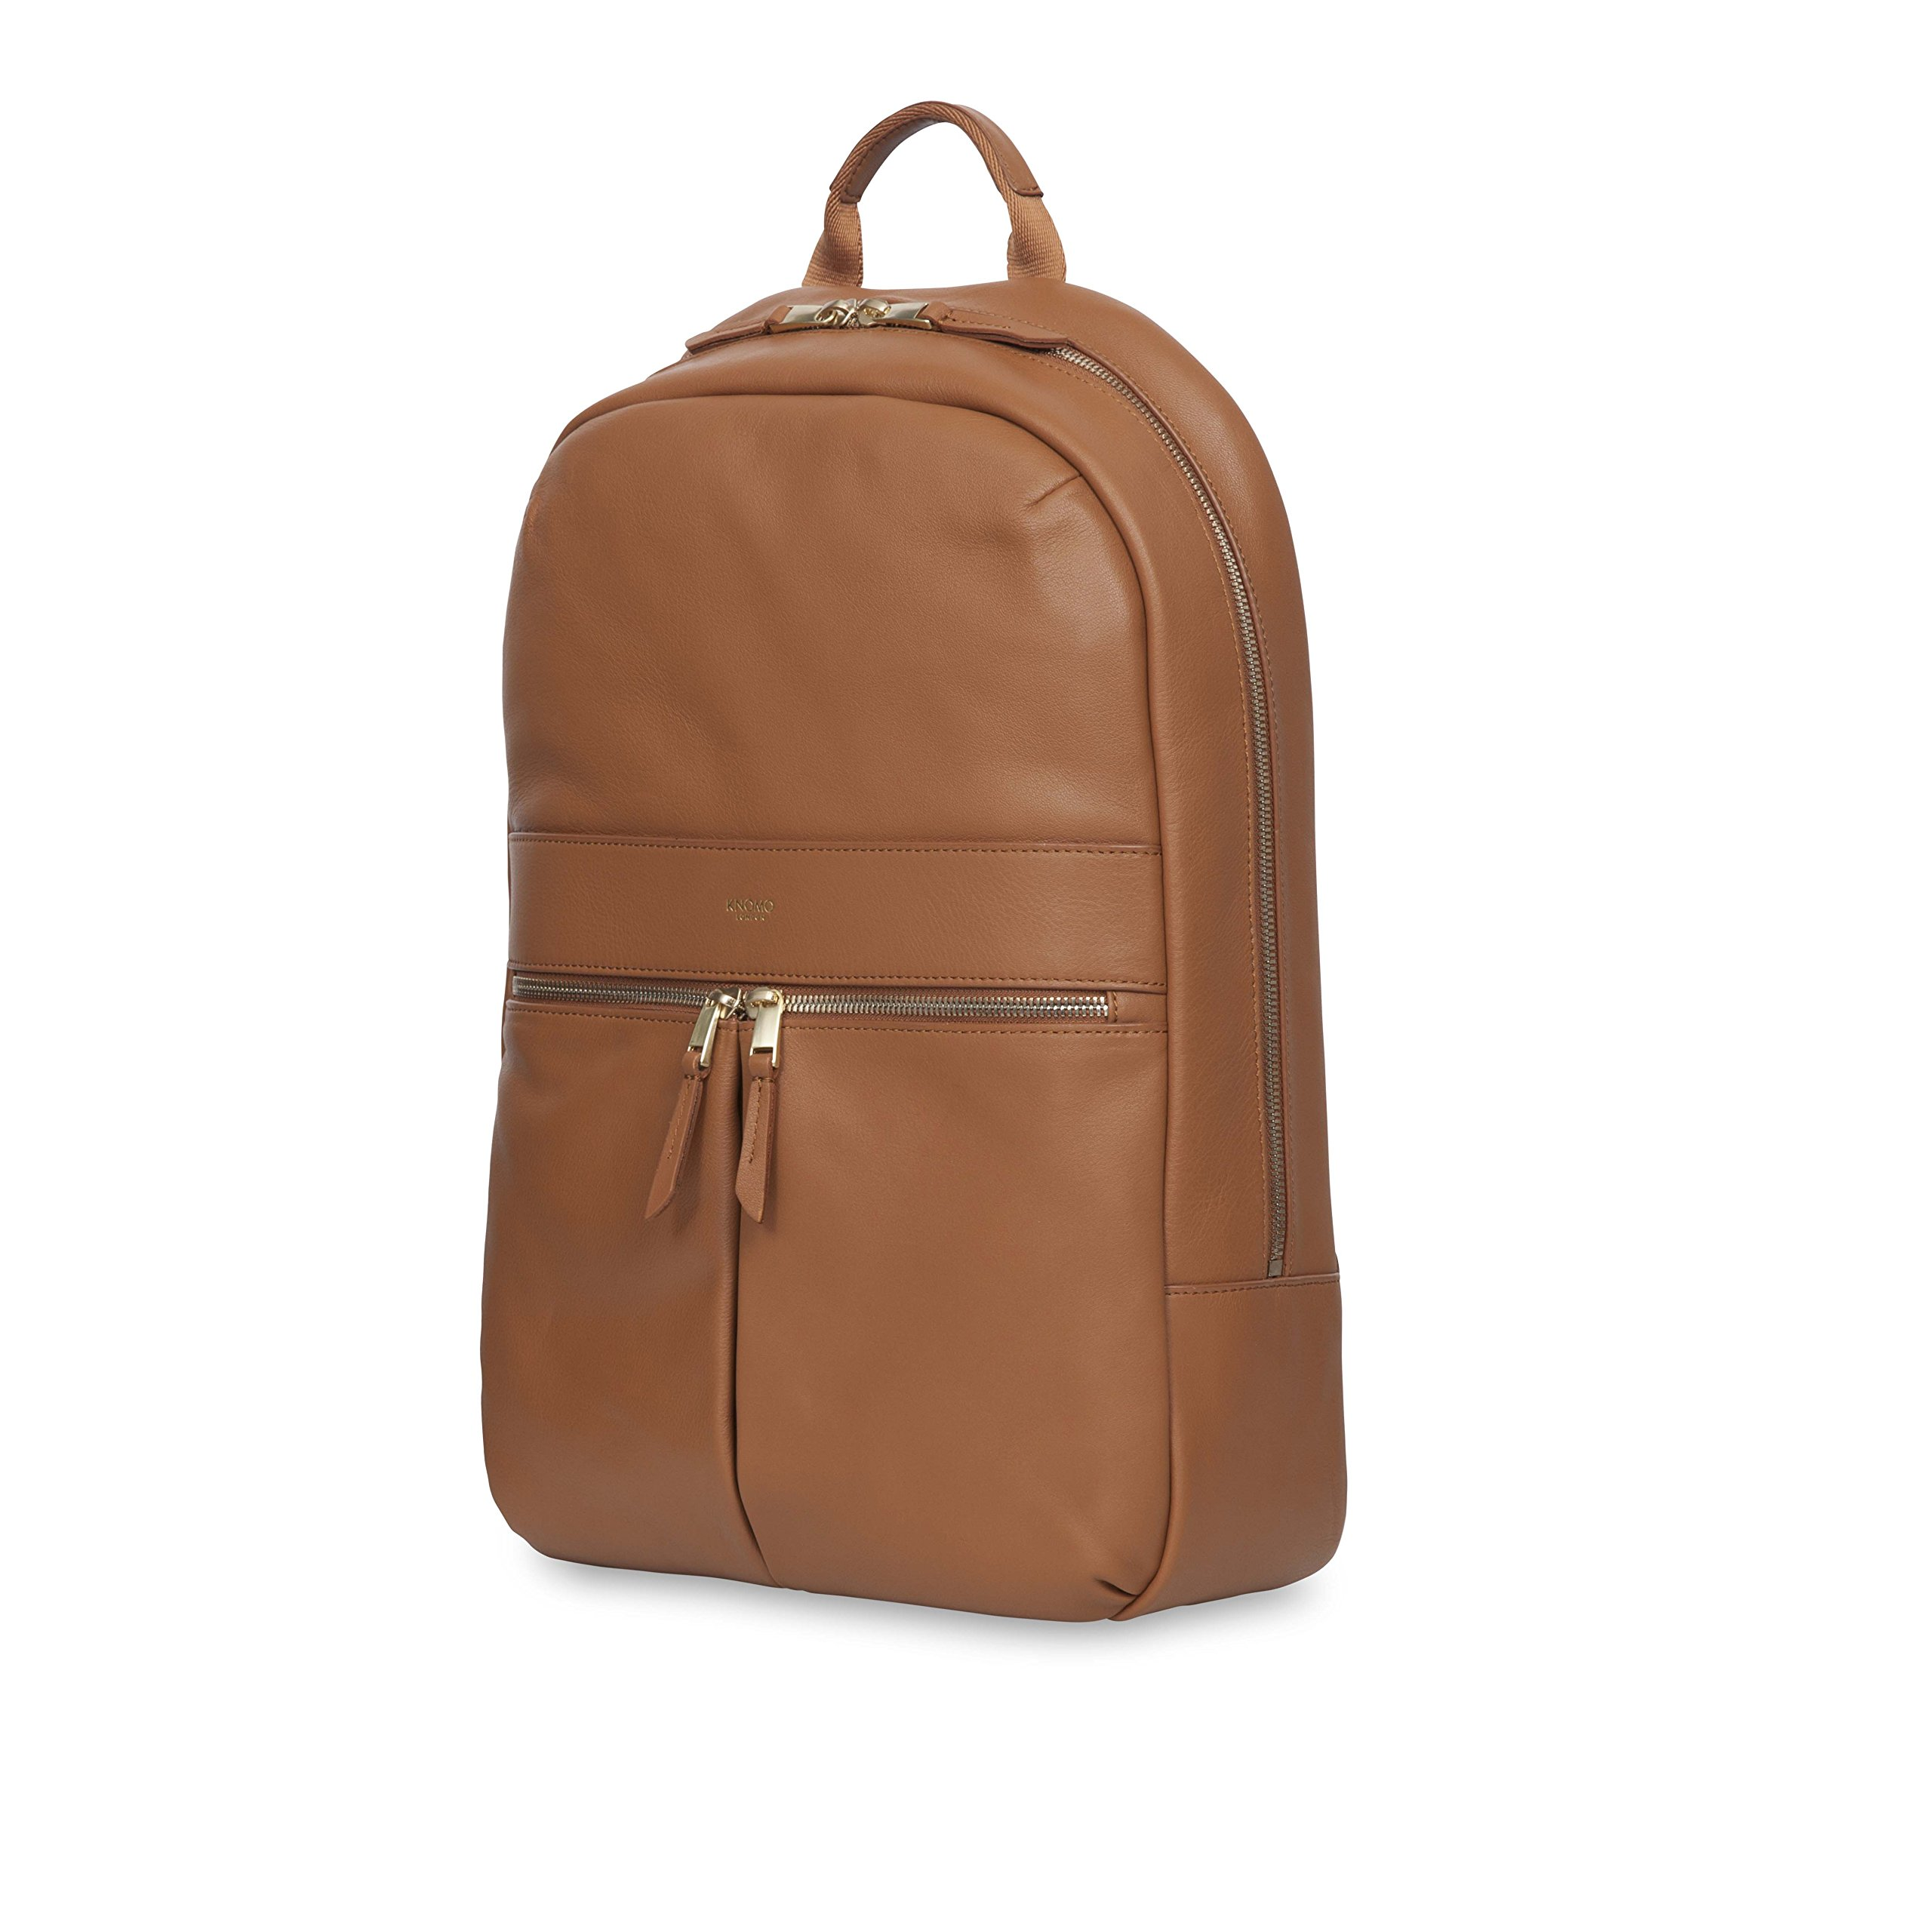 Knomo Luggage Women's Beaux Business Backpack, Caramel, One Size